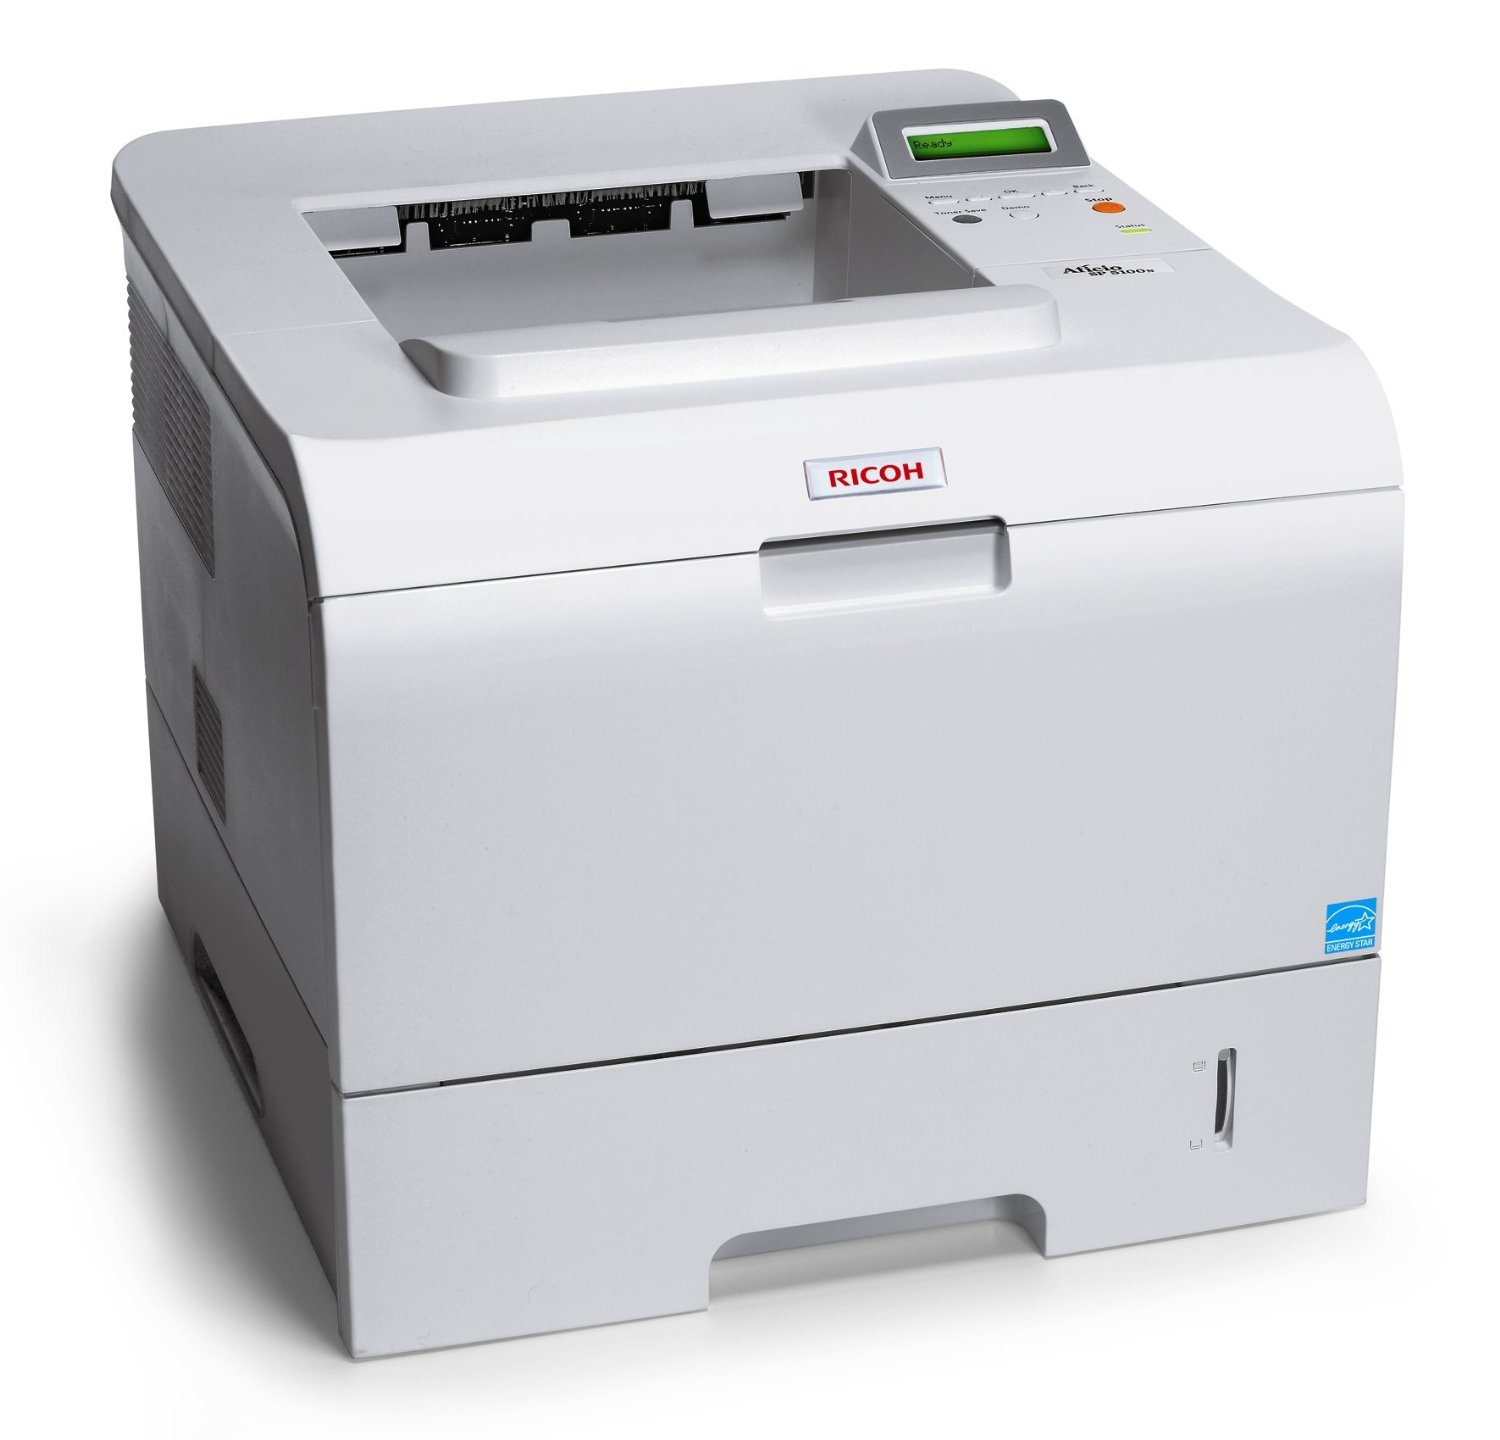 Ricoh Web Services Printer Driver